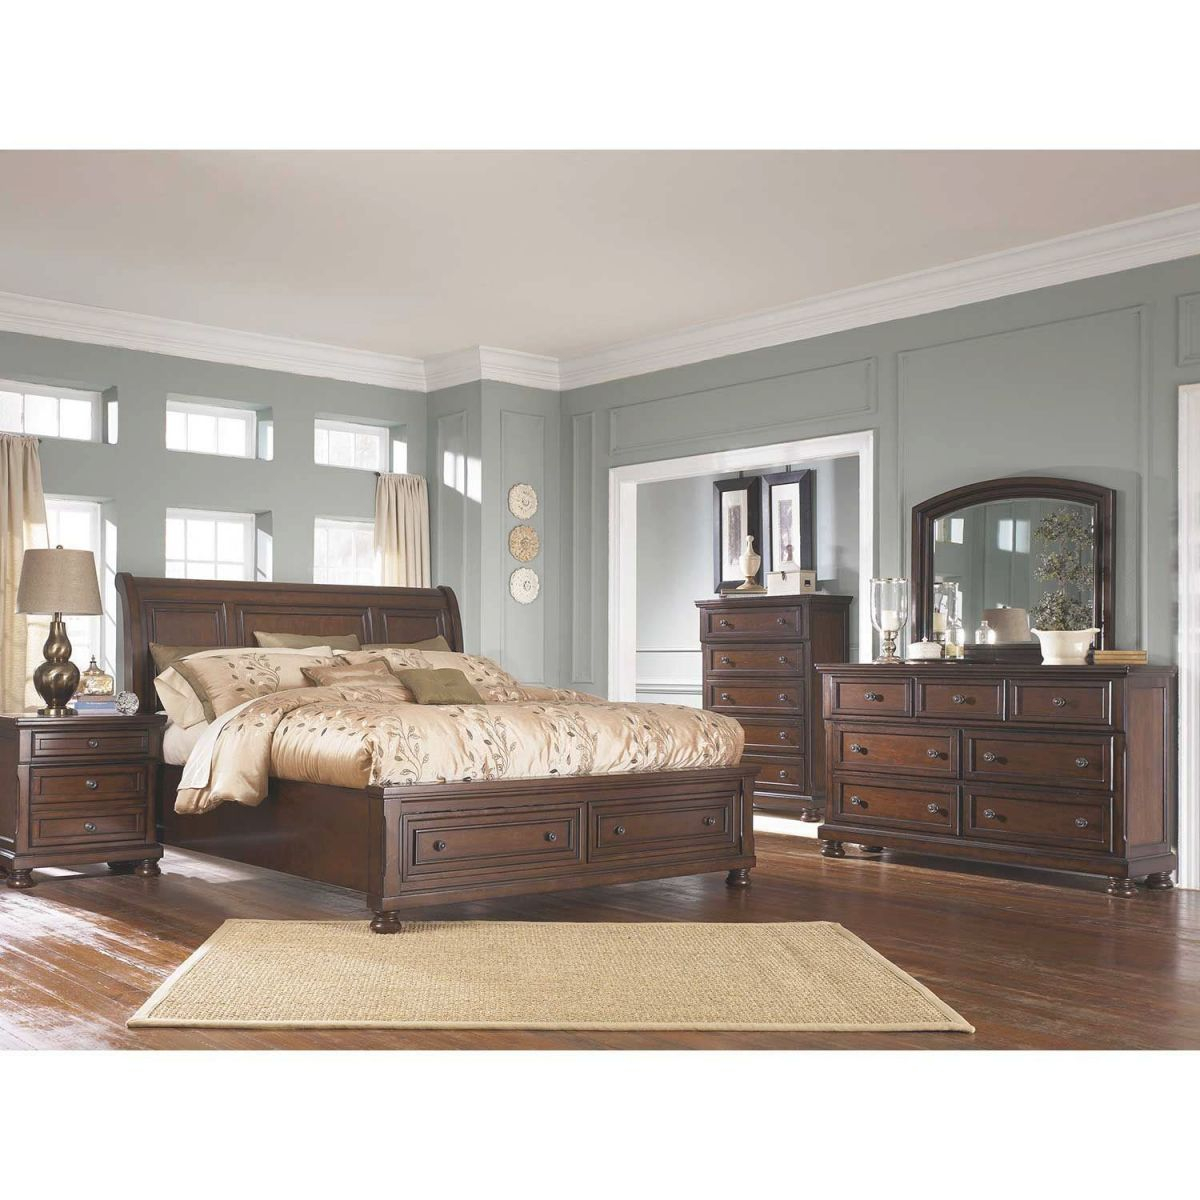 Porter 5 Piece Bedroom Set inside Elegant Furniture Bedroom Set